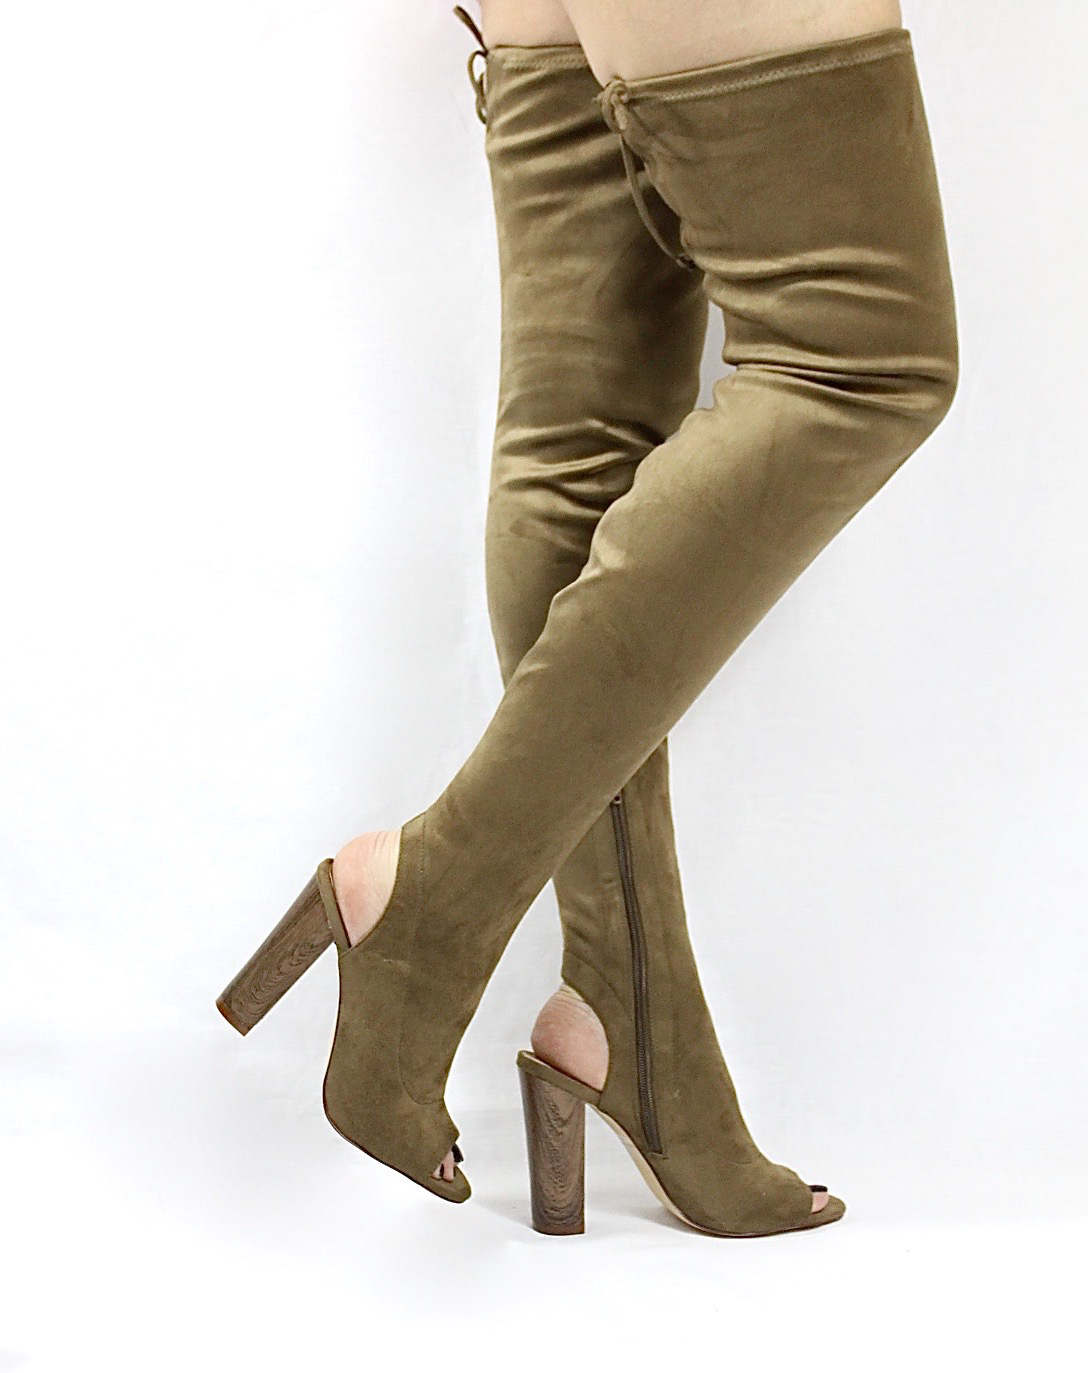 Liliana Sage-44 Olive Over the Knee Thigh High Open Toe Boots-0